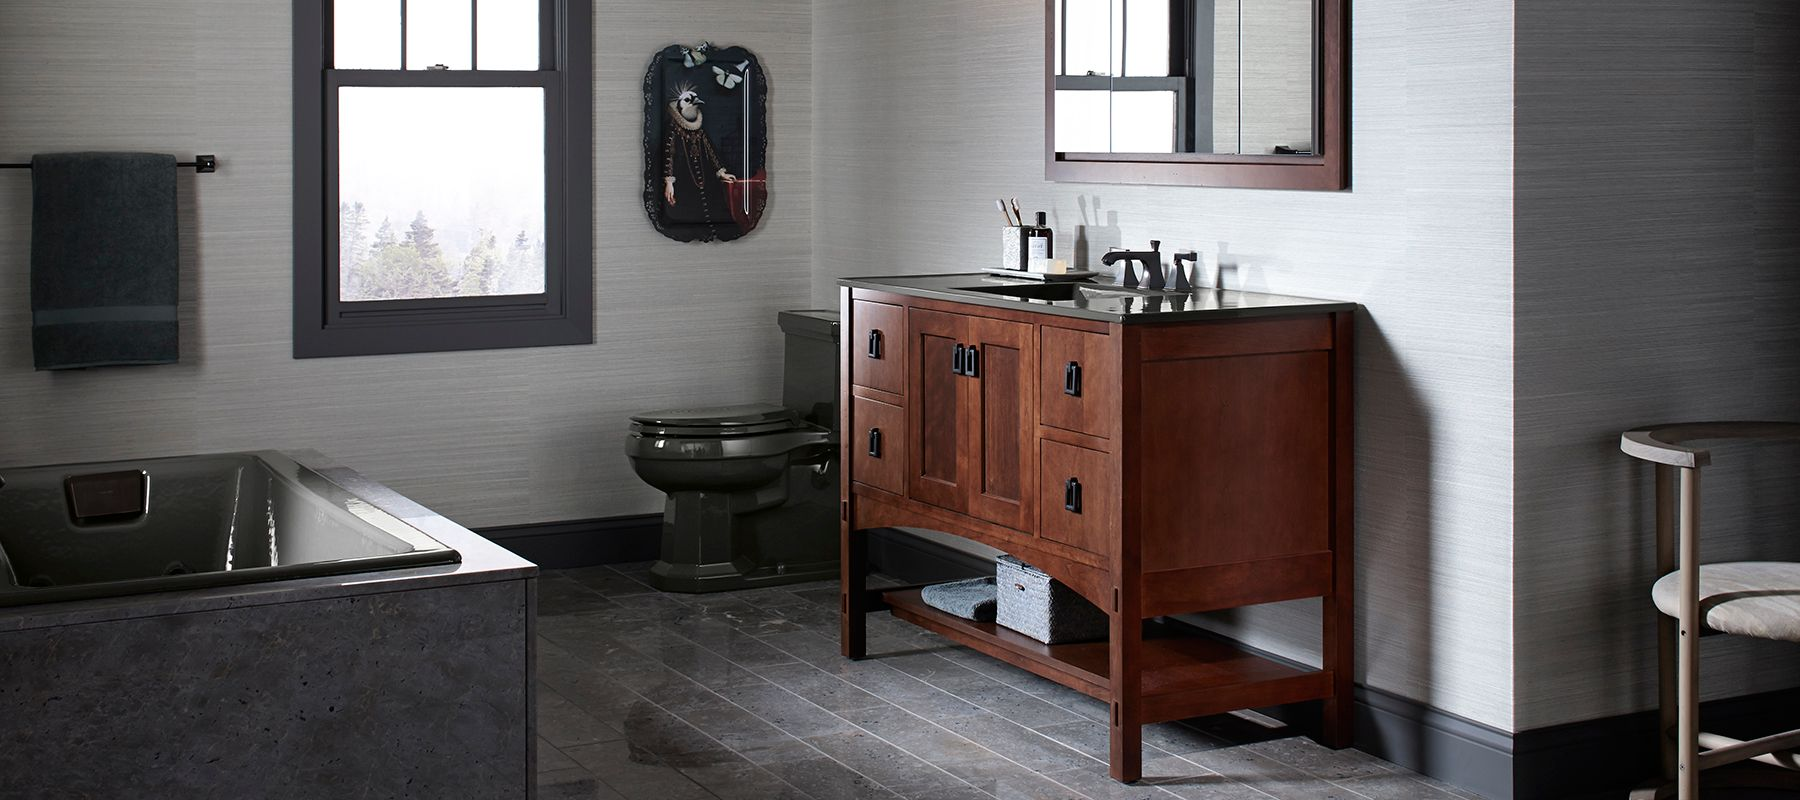 Ideas Bathroom Sink Faucets Bathroom Sinks Bathroom Kohler